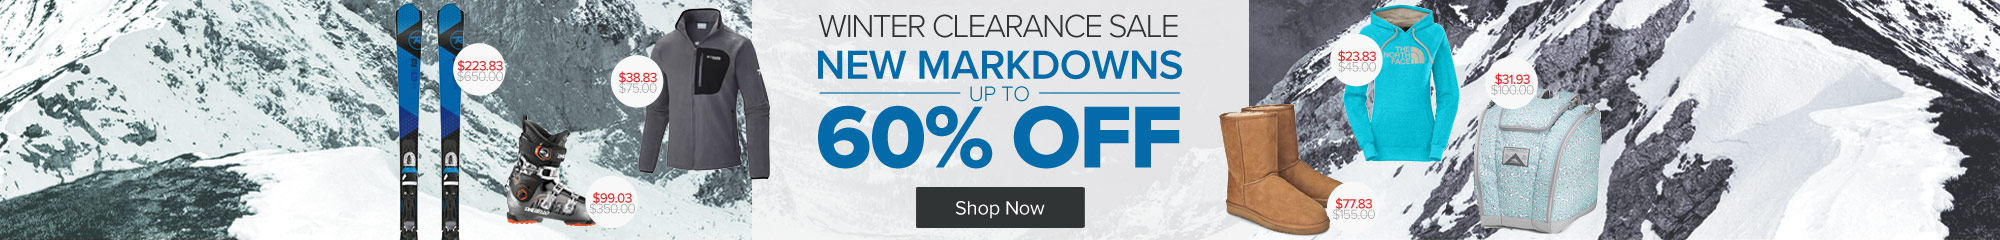 Winter Clearance. Save up to 60% on Ski and Snowboard Equipment, Snow Apparel and Accessories